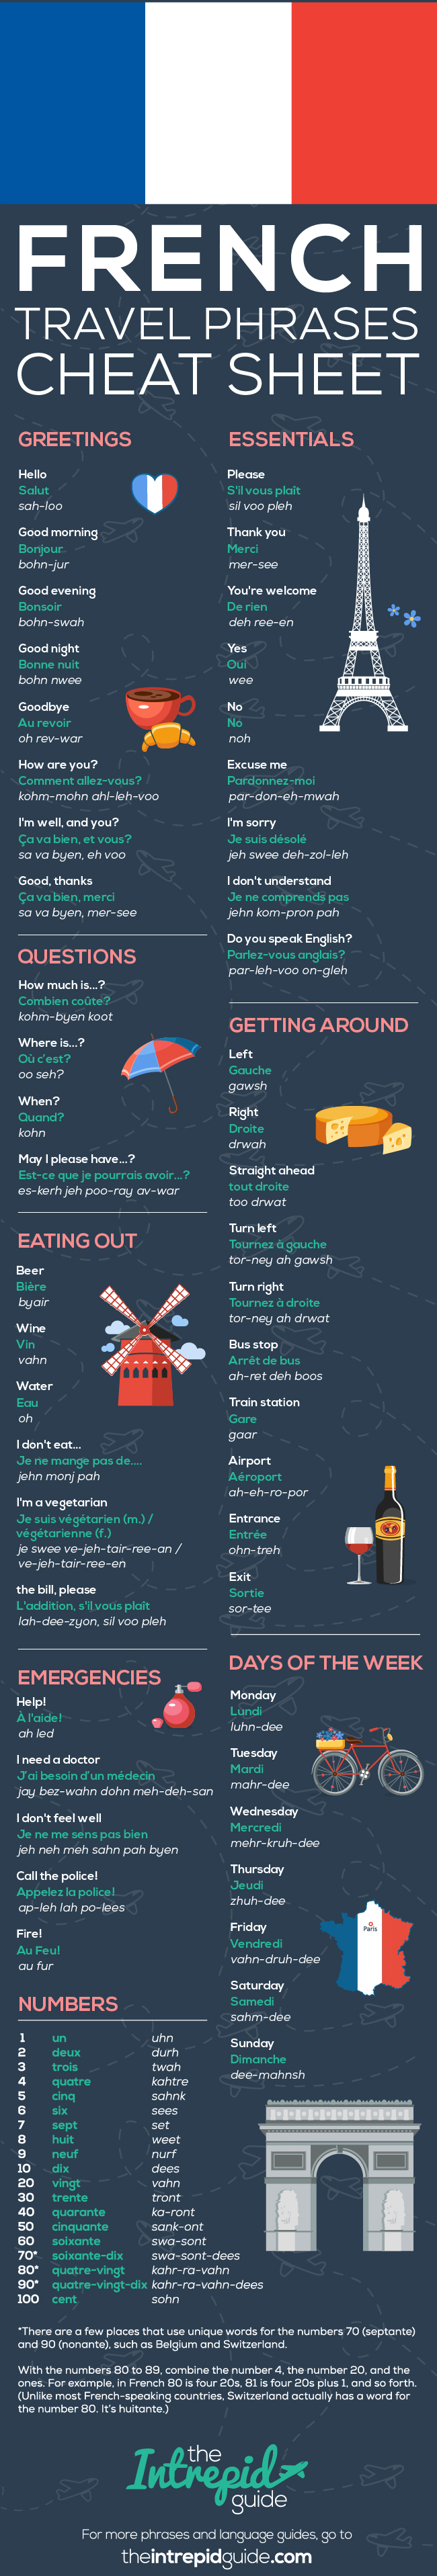 french survival guide